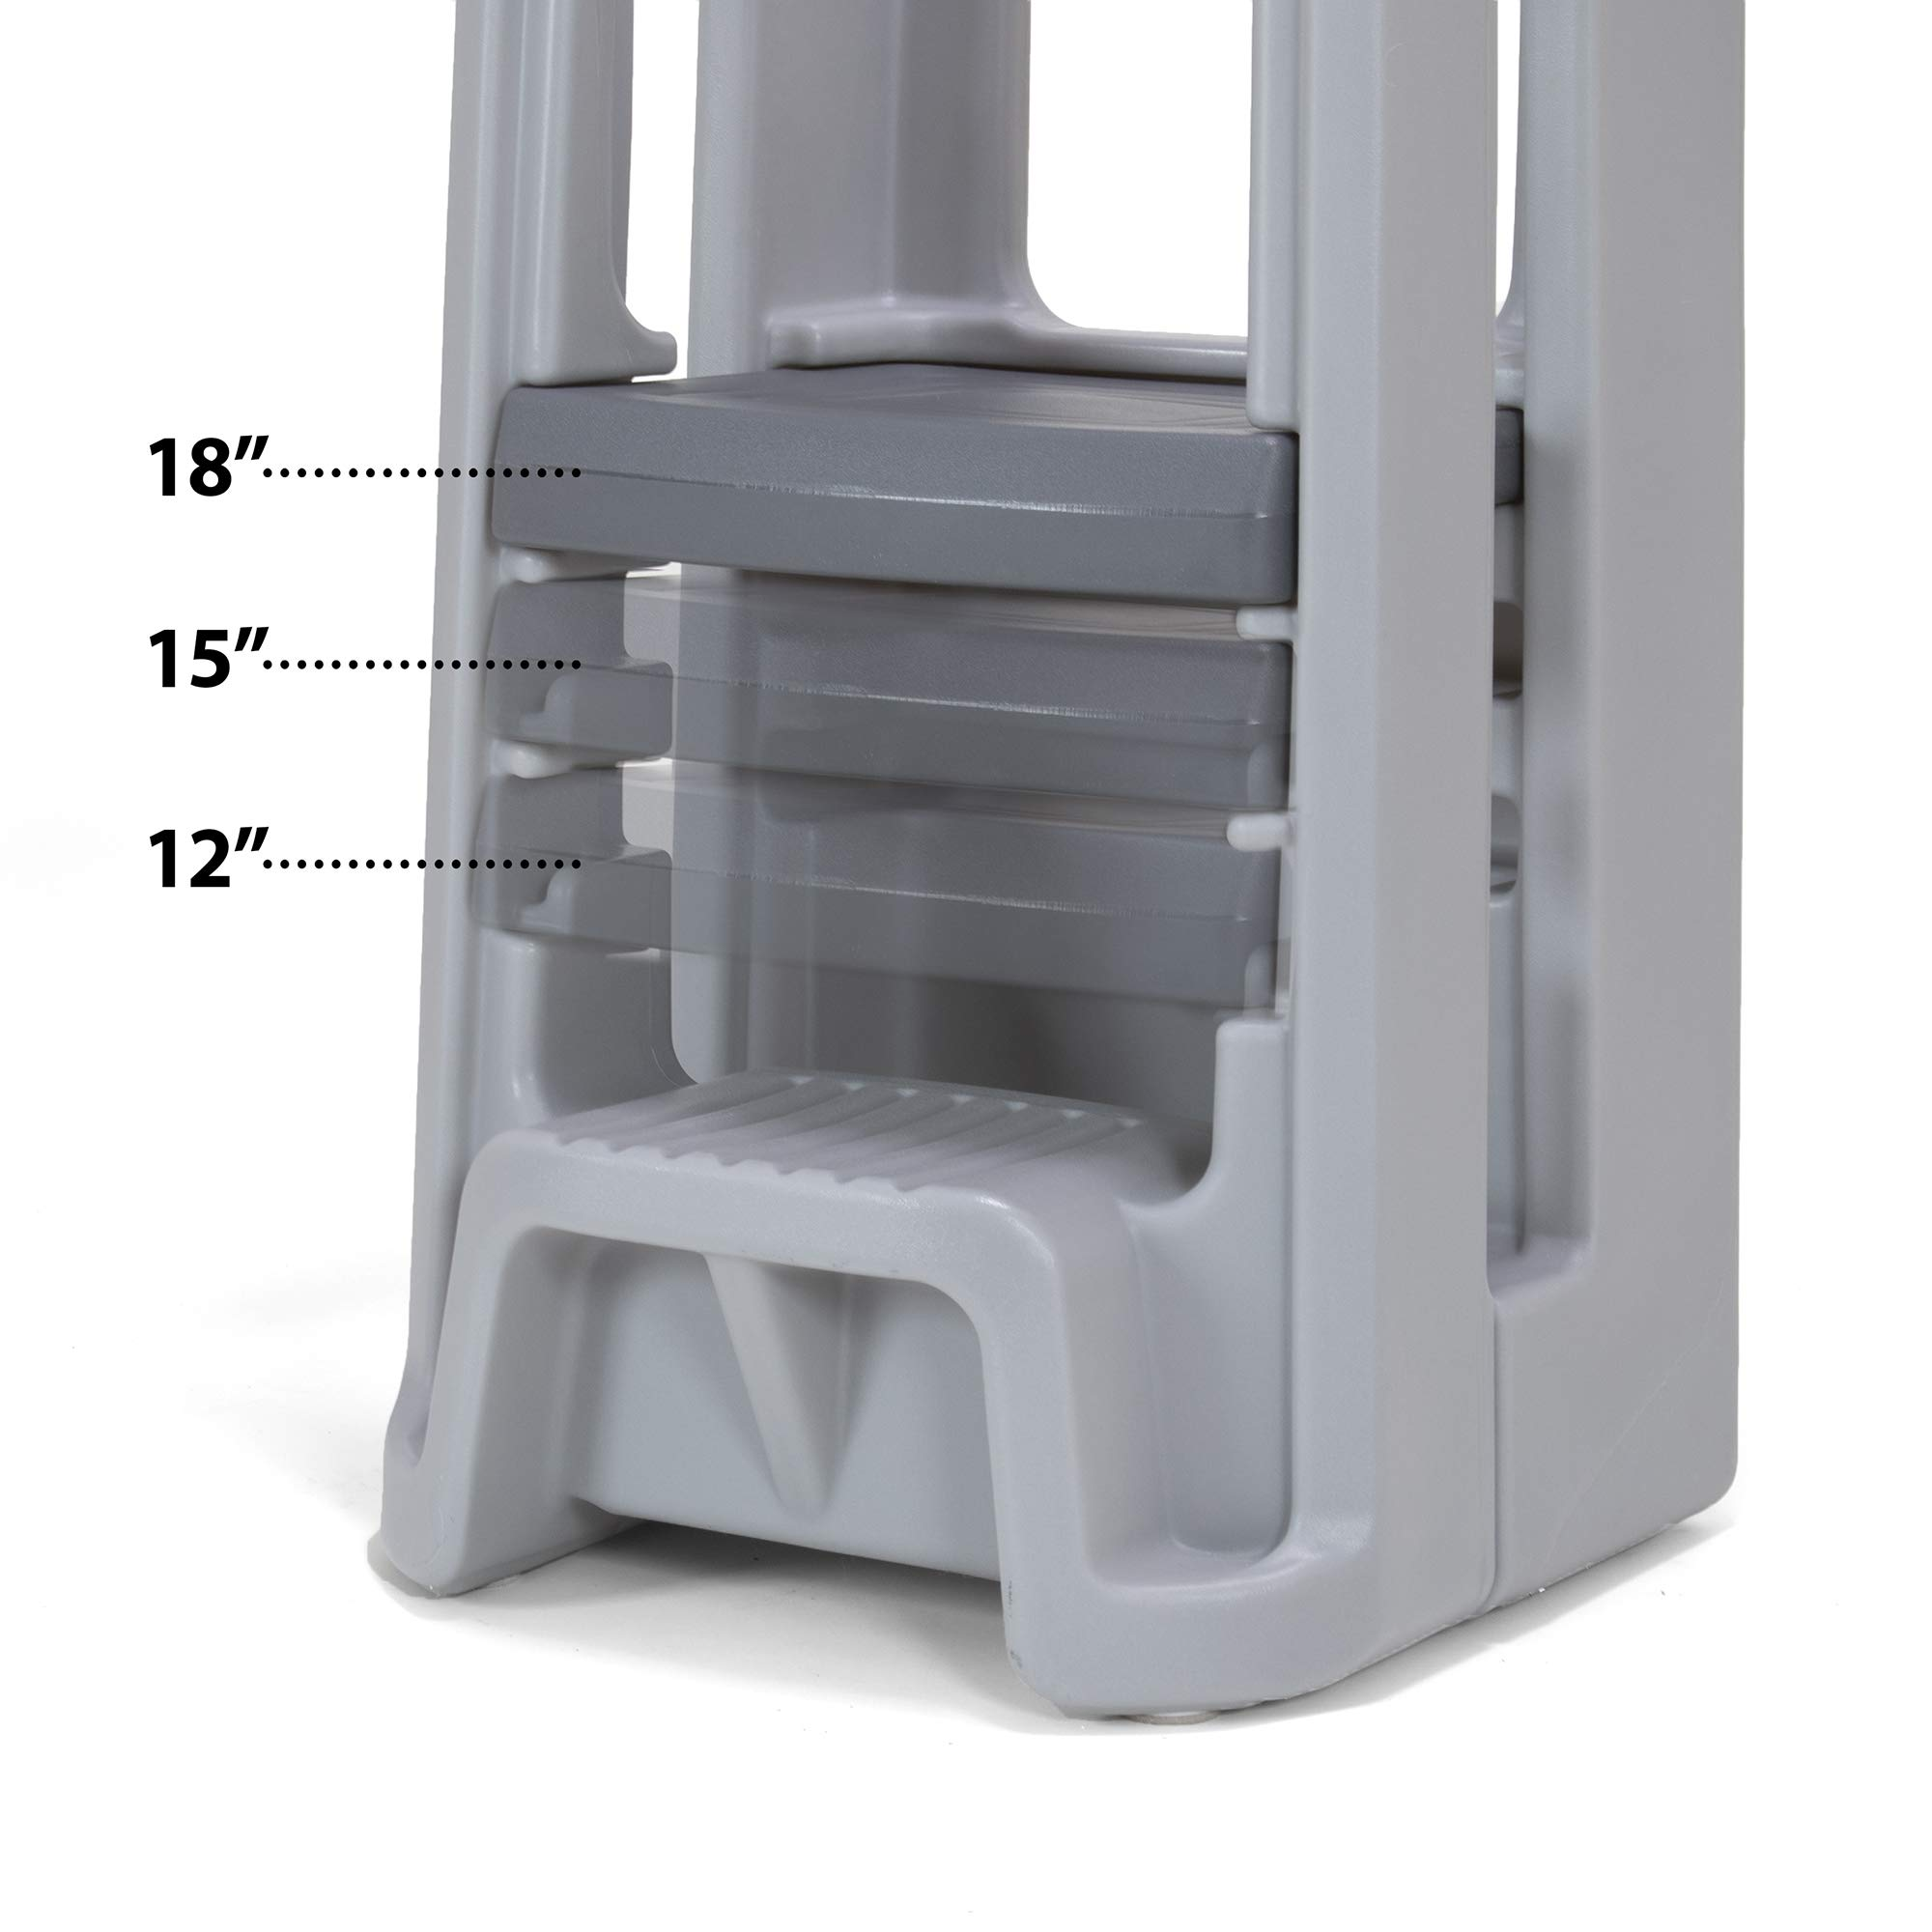 Simplay3 Toddler Tower Childrens Step Stool with Three Adjustable Heights, Gray by Simplay3 (Image #3)